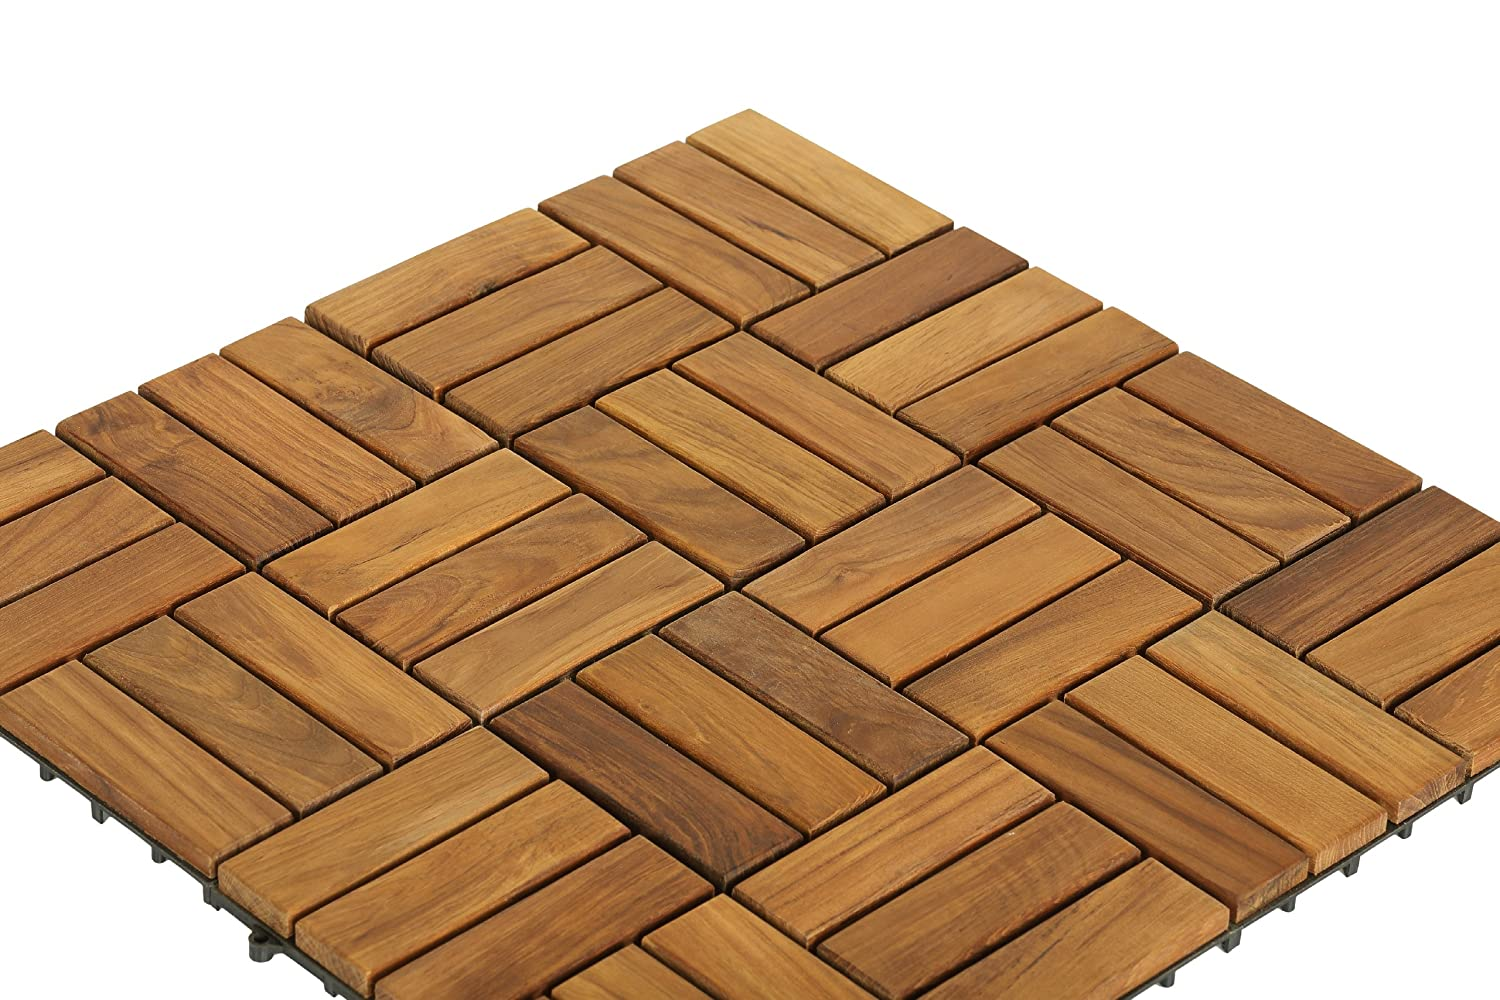 Wood Floor Tiles Bare Decor BARE-WF2009 Solid Teak Wood Interlocking ...